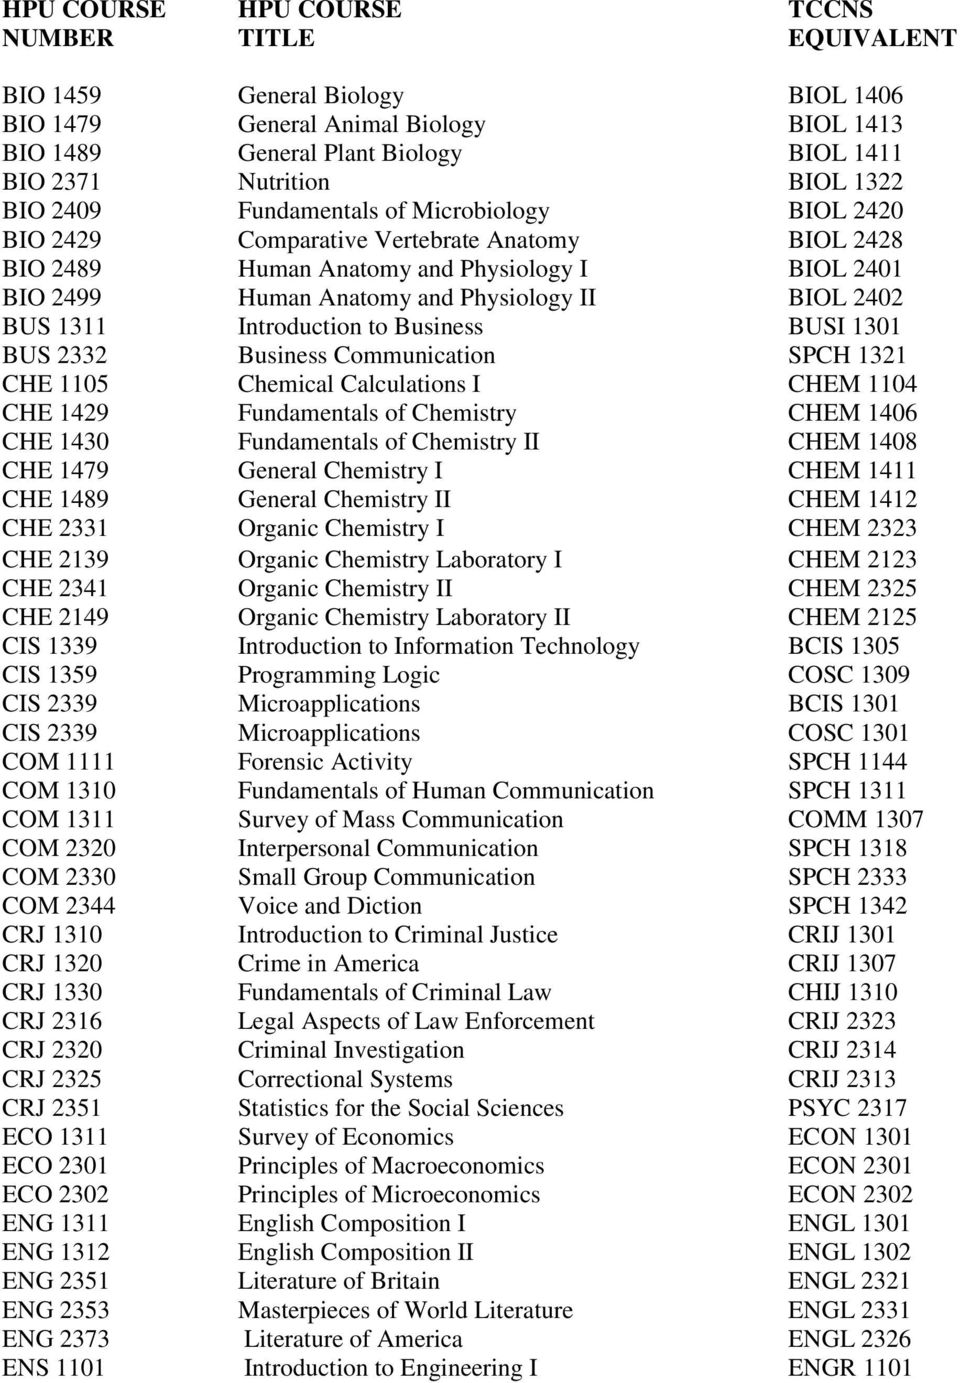 Business Communication SPCH 1321 CHE 1105 Chemical Calculations I CHEM 1104 CHE 1429 Fundamentals of Chemistry CHEM 1406 CHE 1430 Fundamentals of Chemistry II CHEM 1408 CHE 1479 General Chemistry I